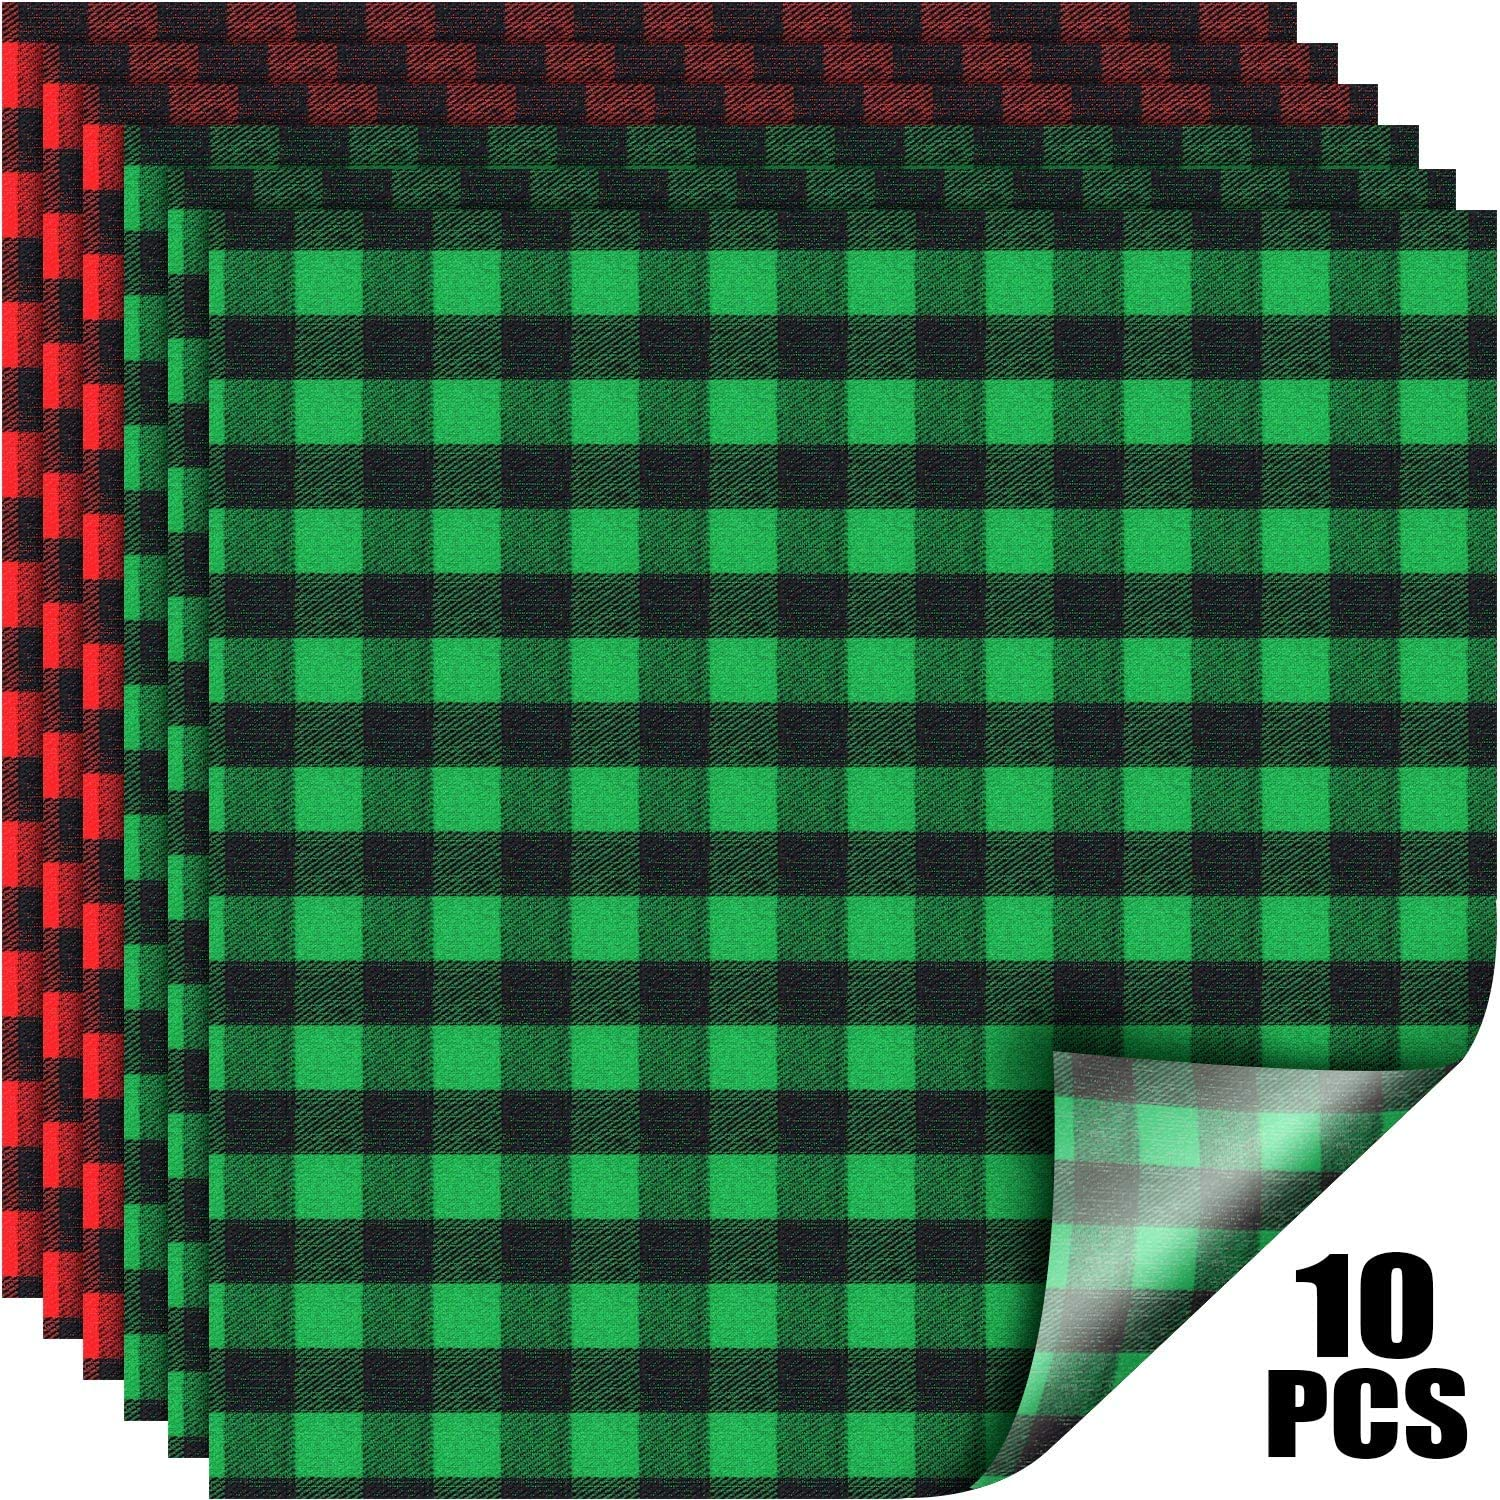 Iron On Transfers Black And White Plaid Buffalo Plaid Vinyl Fabric Check Vinyl Sheets Adhesive Heat Transfer Sheets Iron On Vinyl Clothes Patches For Lumberjack Party 2020 New Year Valentines Day Arts Crafts